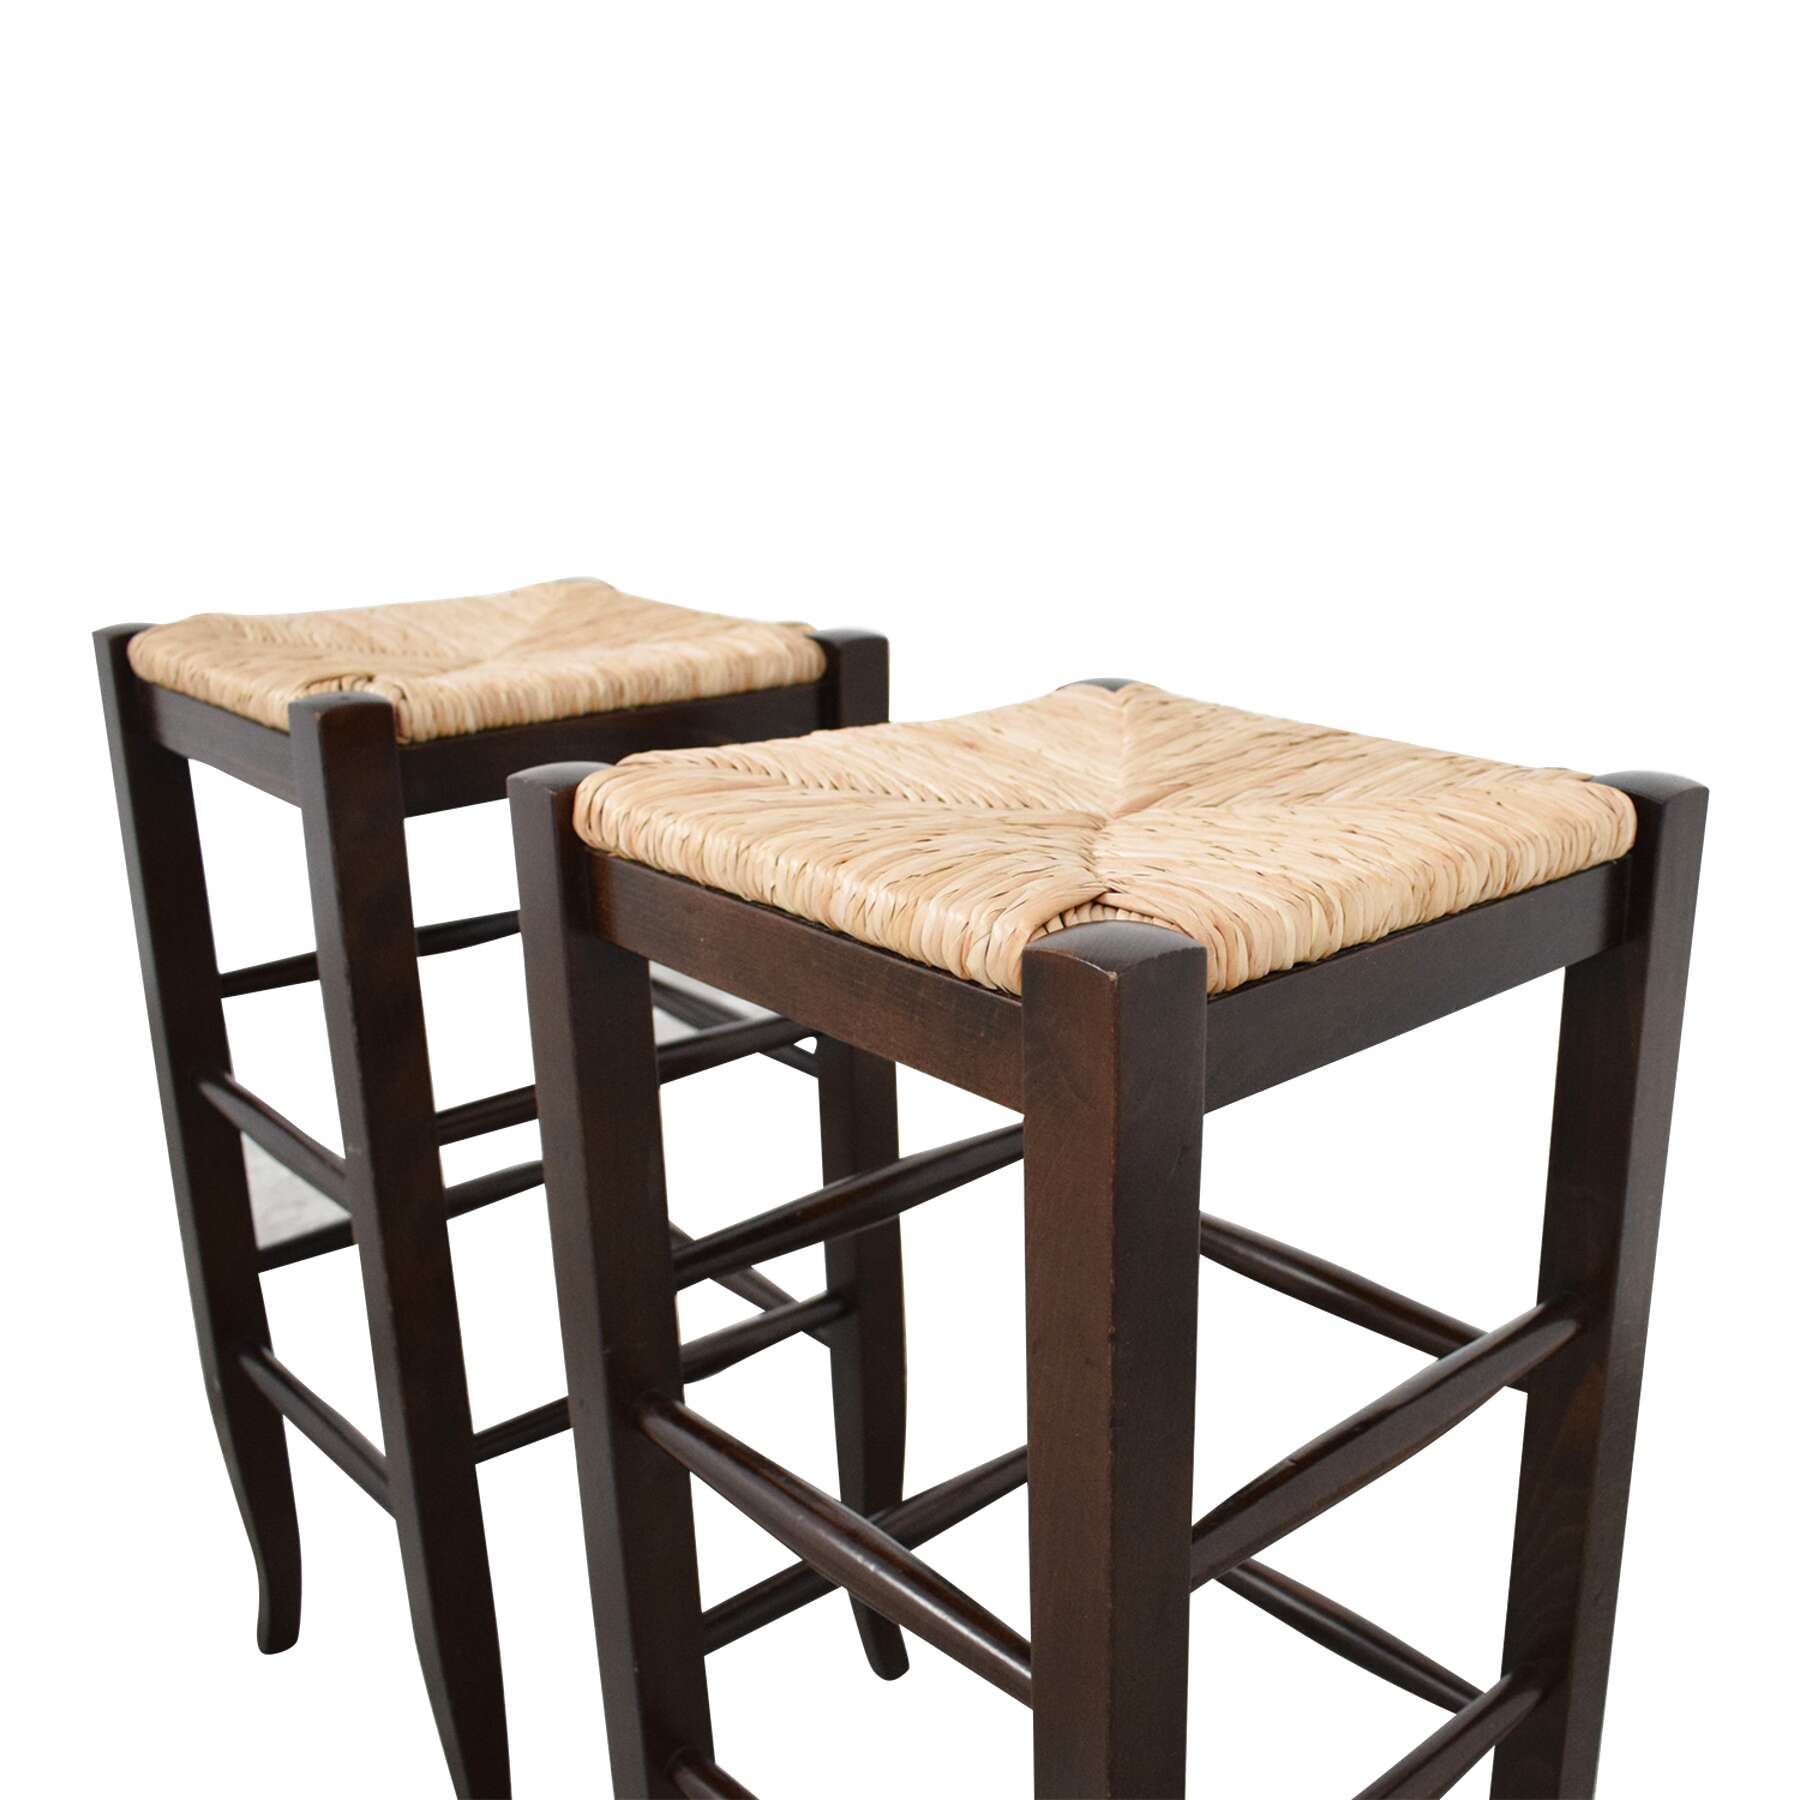 Bar Stools And High Table, Pottery Barn Stool For Sale Only 2 Left At 70